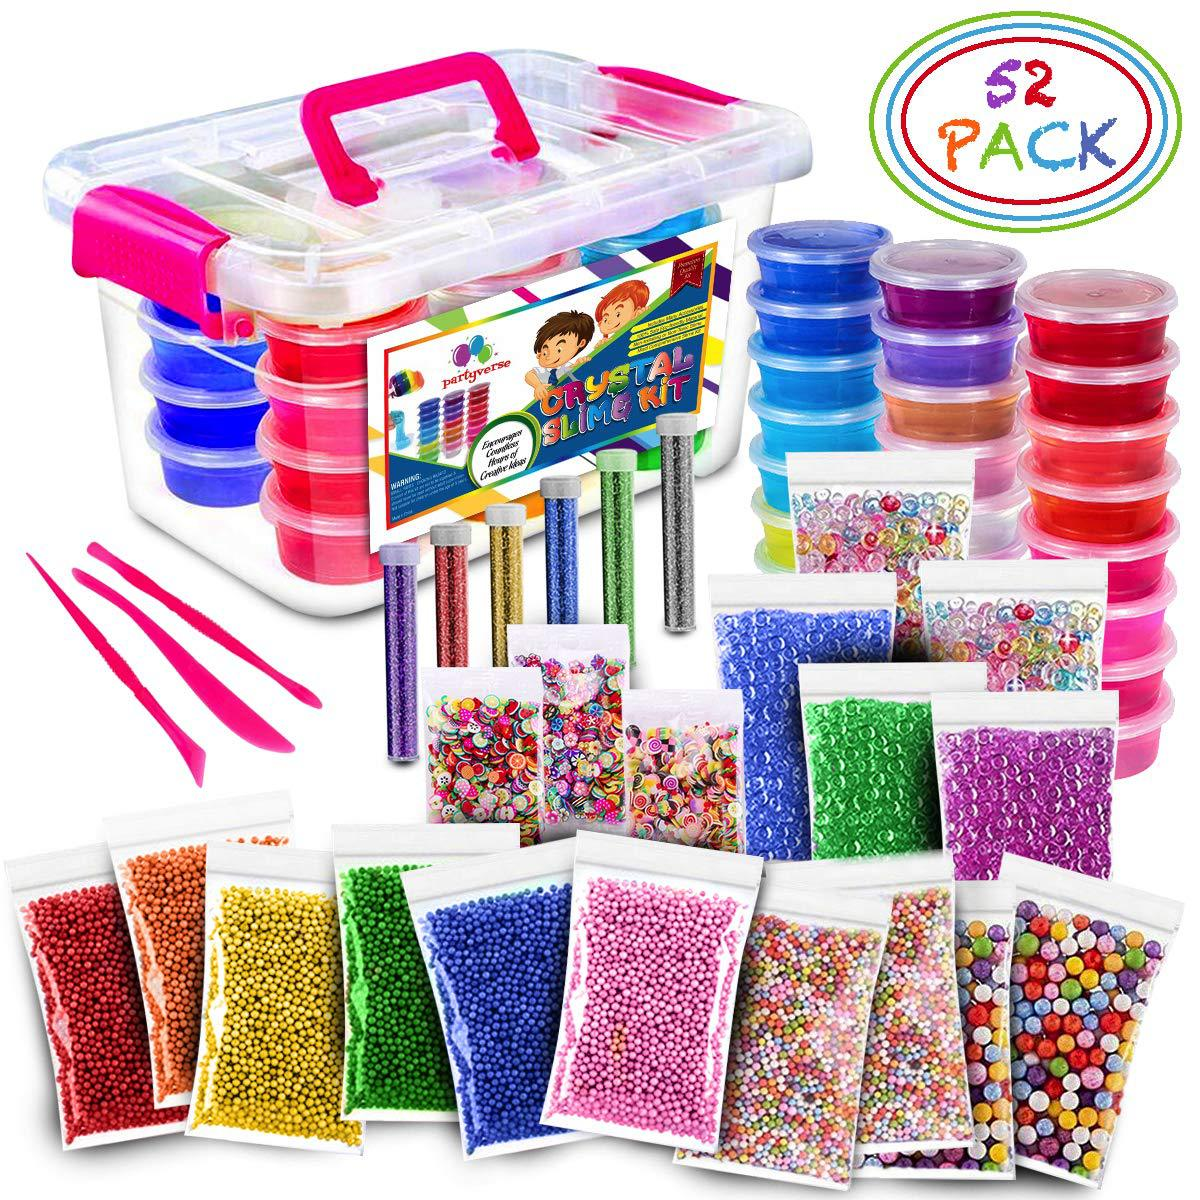 52Pack/Lot Fluffy Slime Kit 24 Color Slime Supplies Gifts for kids DIY Kit Sensory Play Stress Relief Toy Stretchy Soft for Kids(China)